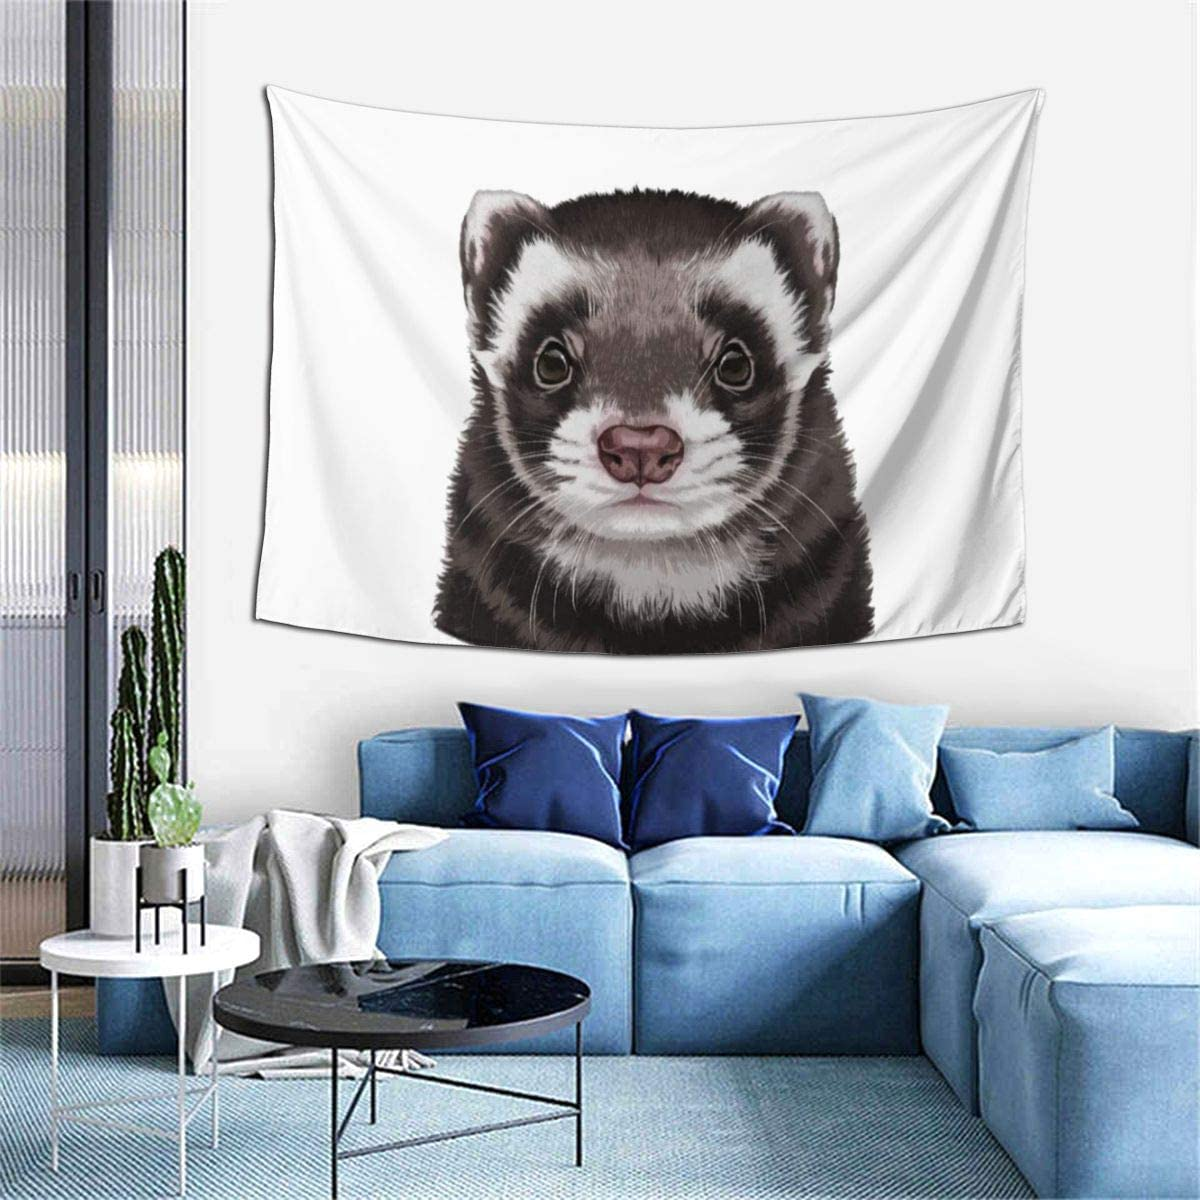 Marrtly Cute Animal Ferret Pet Tapestry Wall Hanging Decorative Wall Art Tapestries for Bedroom,Living Room,Home Decoration 60 X40 in